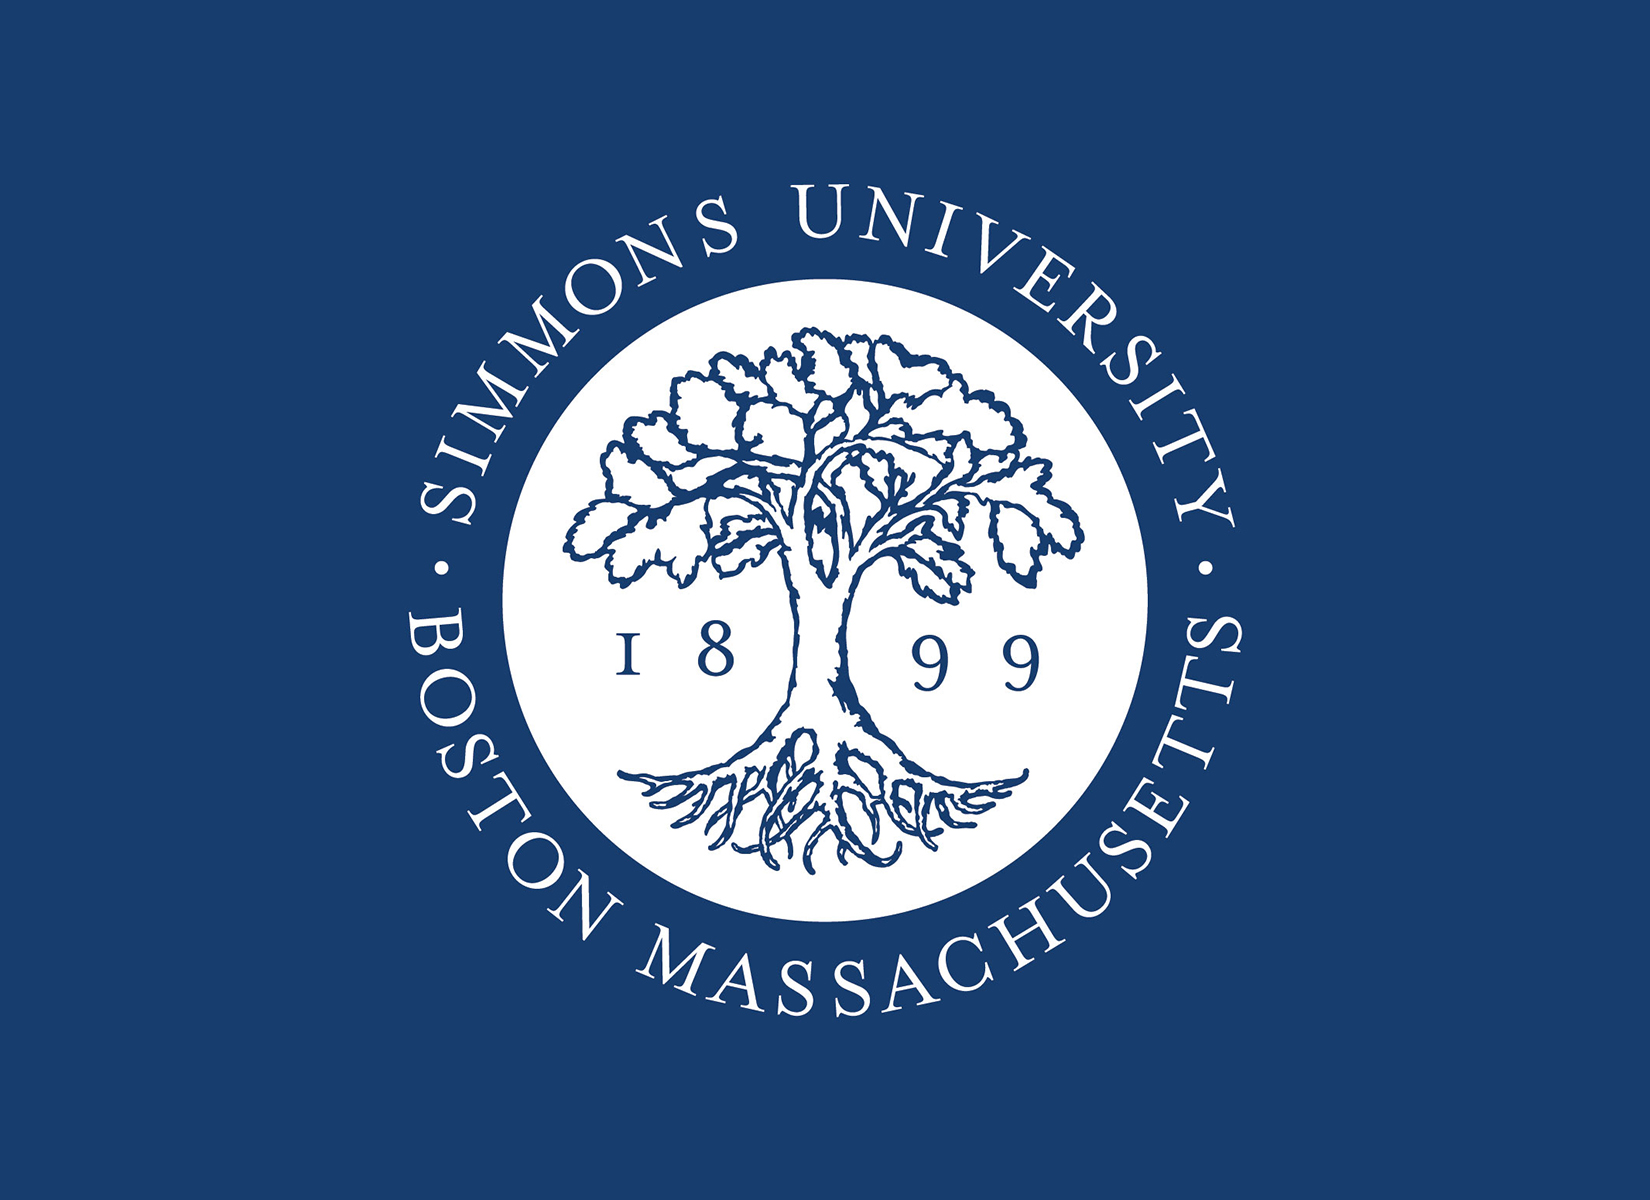 We Are Simmons University.